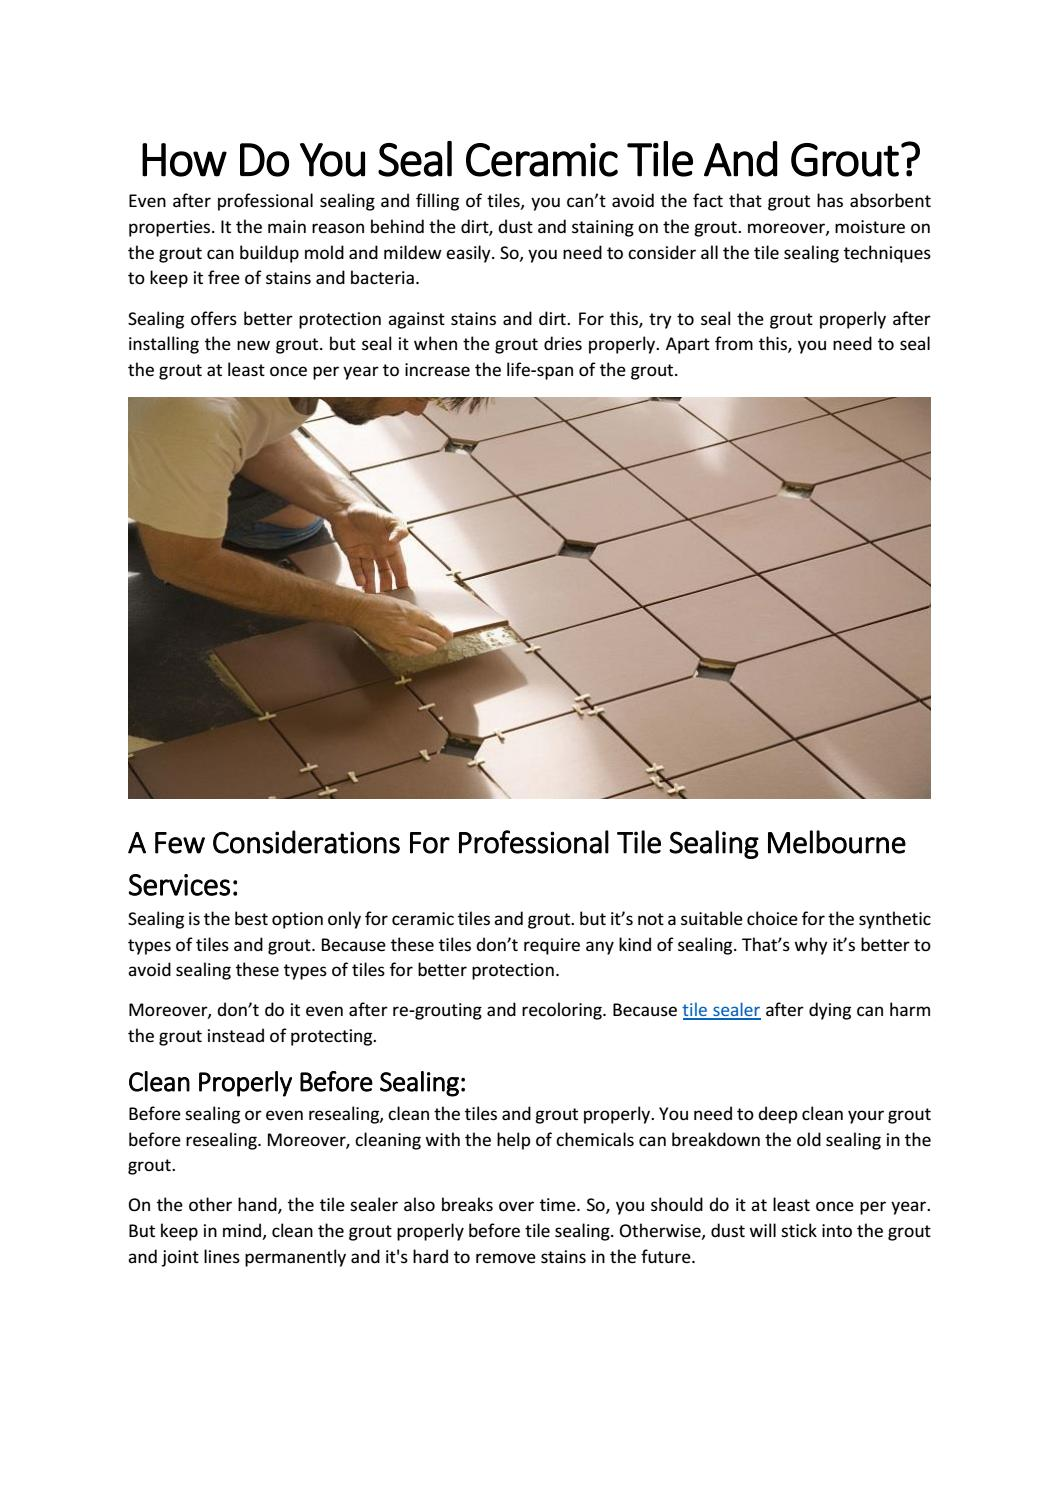 how do you seal ceramic tile and grout